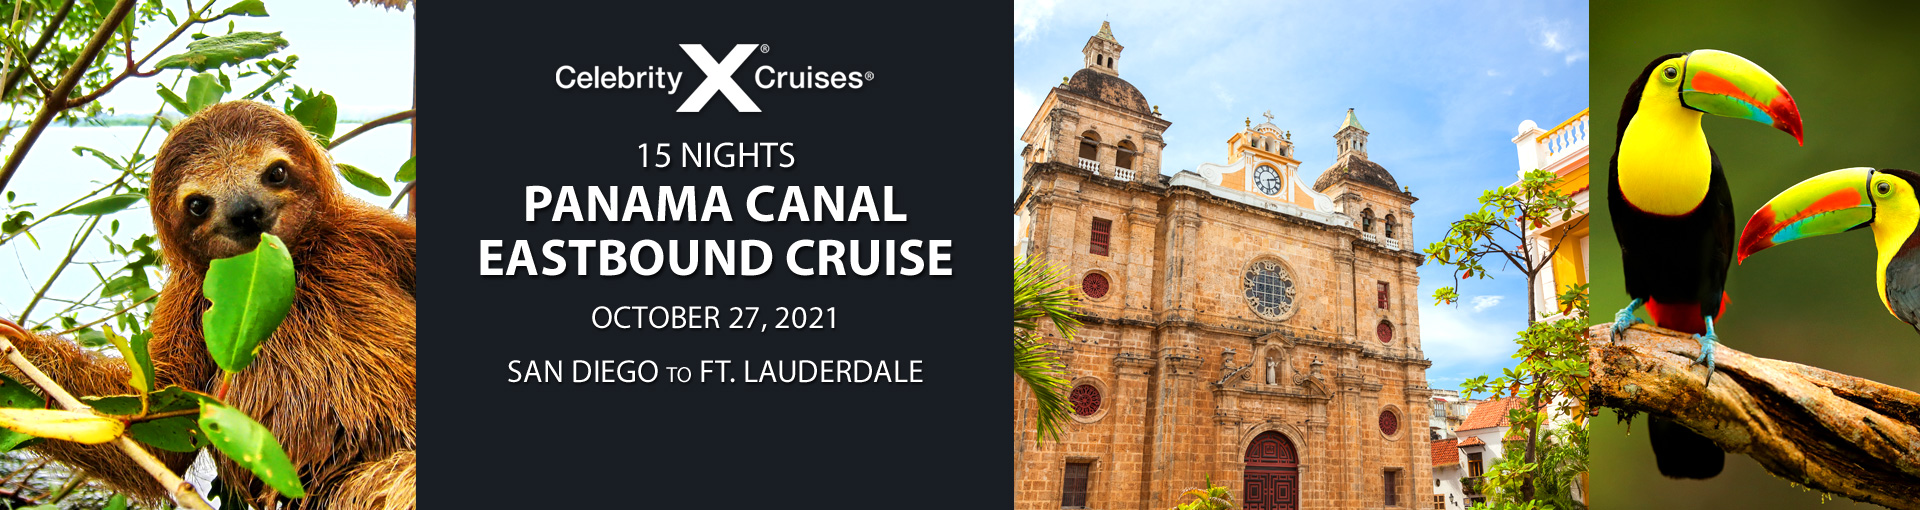 Celebrity Cruises: Exclusive offer for Panama Canal cruise departing Oct 27, 2021